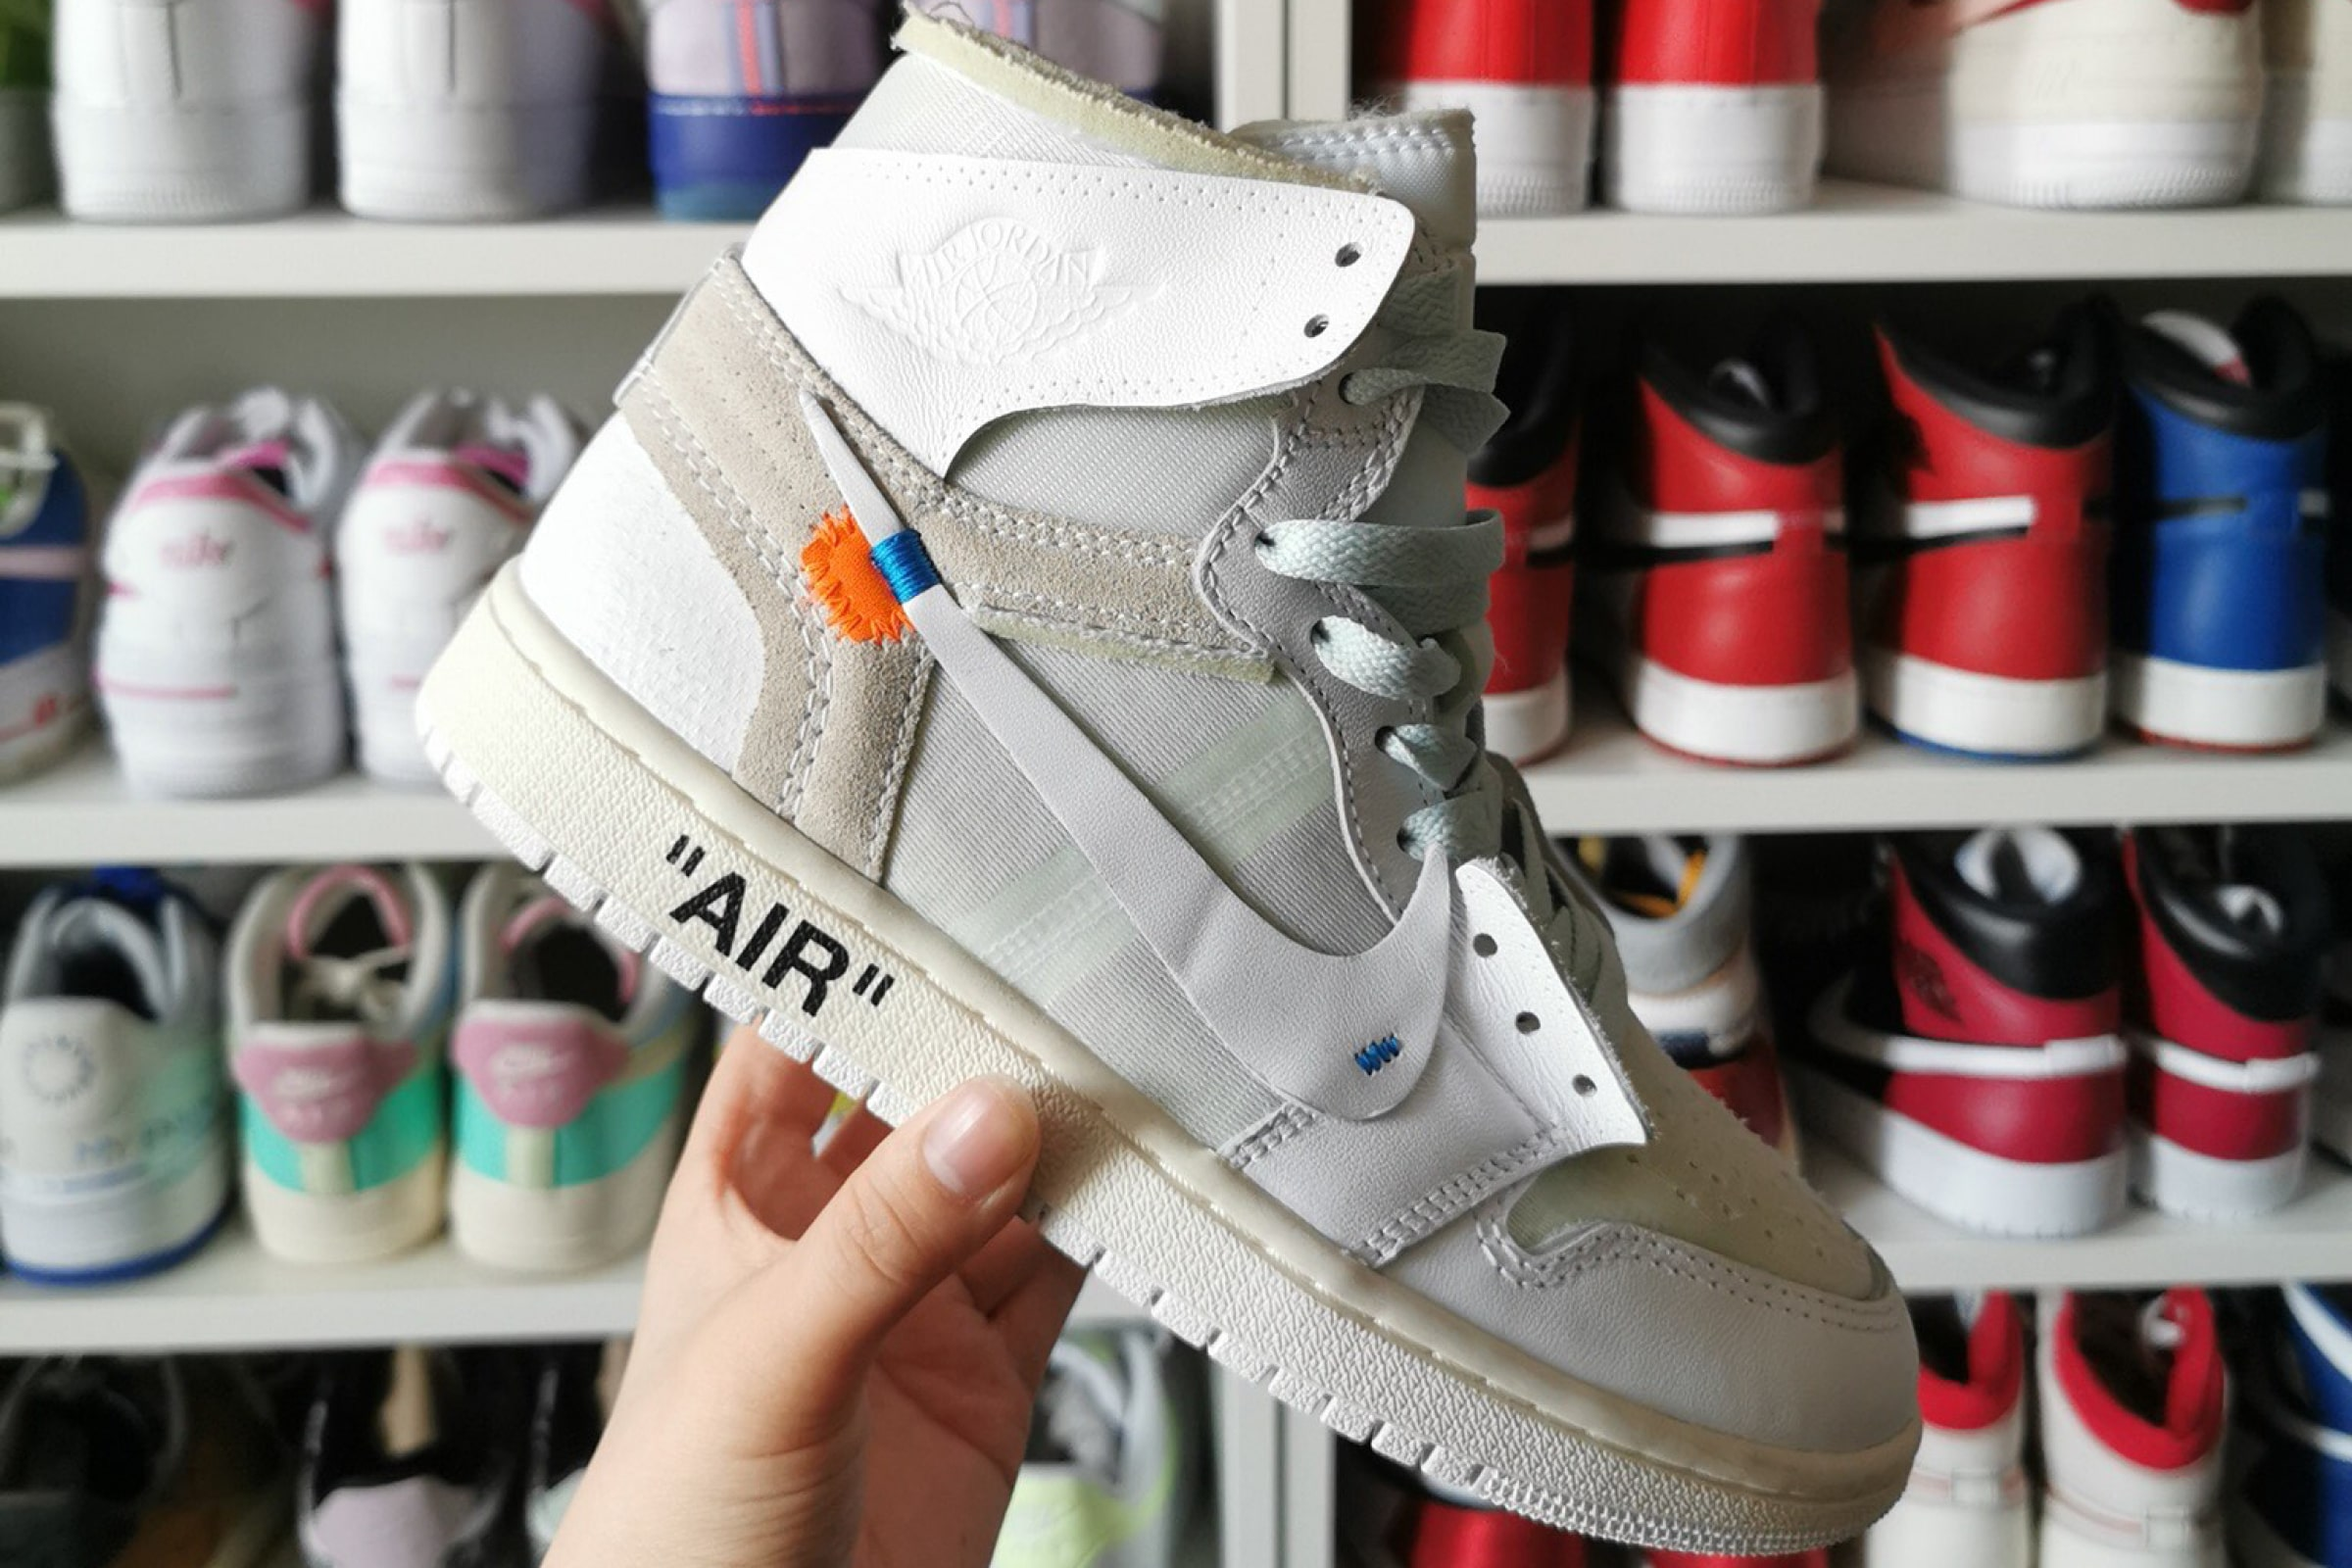 Nike x Off-White Air Jordan 1 - 2018